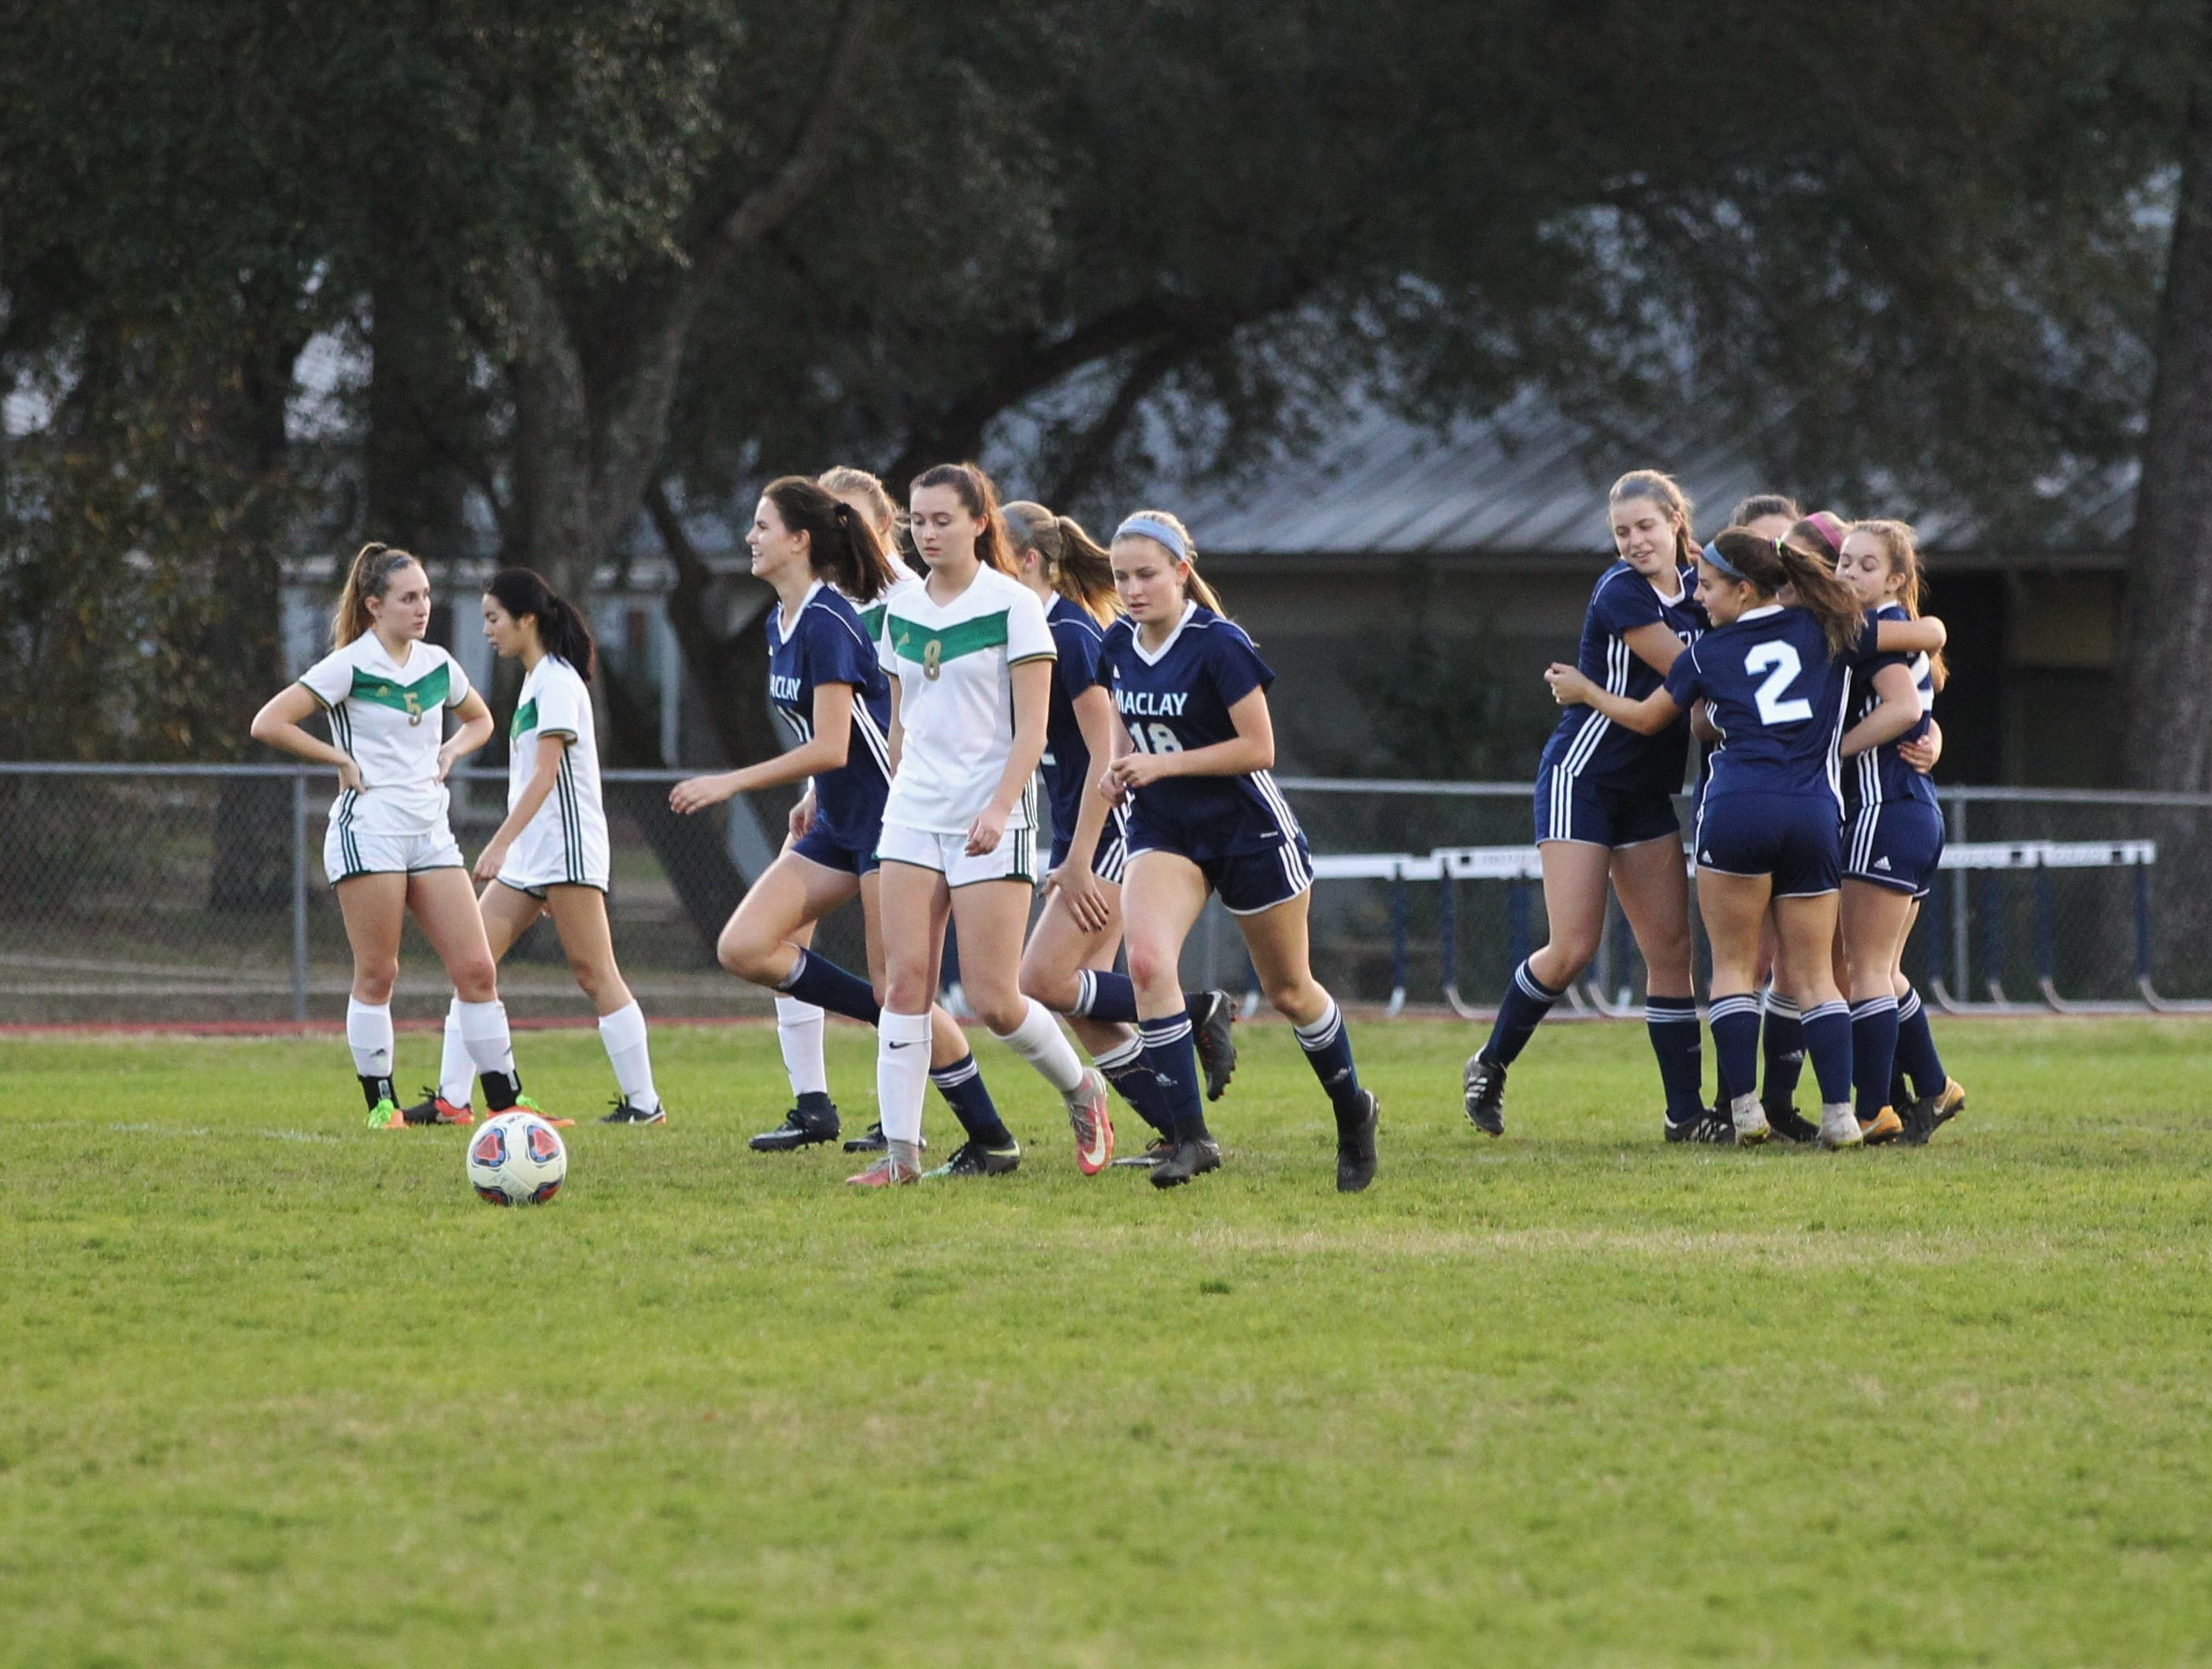 Maclay's Colleen Donahue is mobbed after a PK goal as Maclay's girls soccer team beat St. Joseph Academy 4-0 in a Region 1-1A quarterfinal on Jan. 5, 2019.